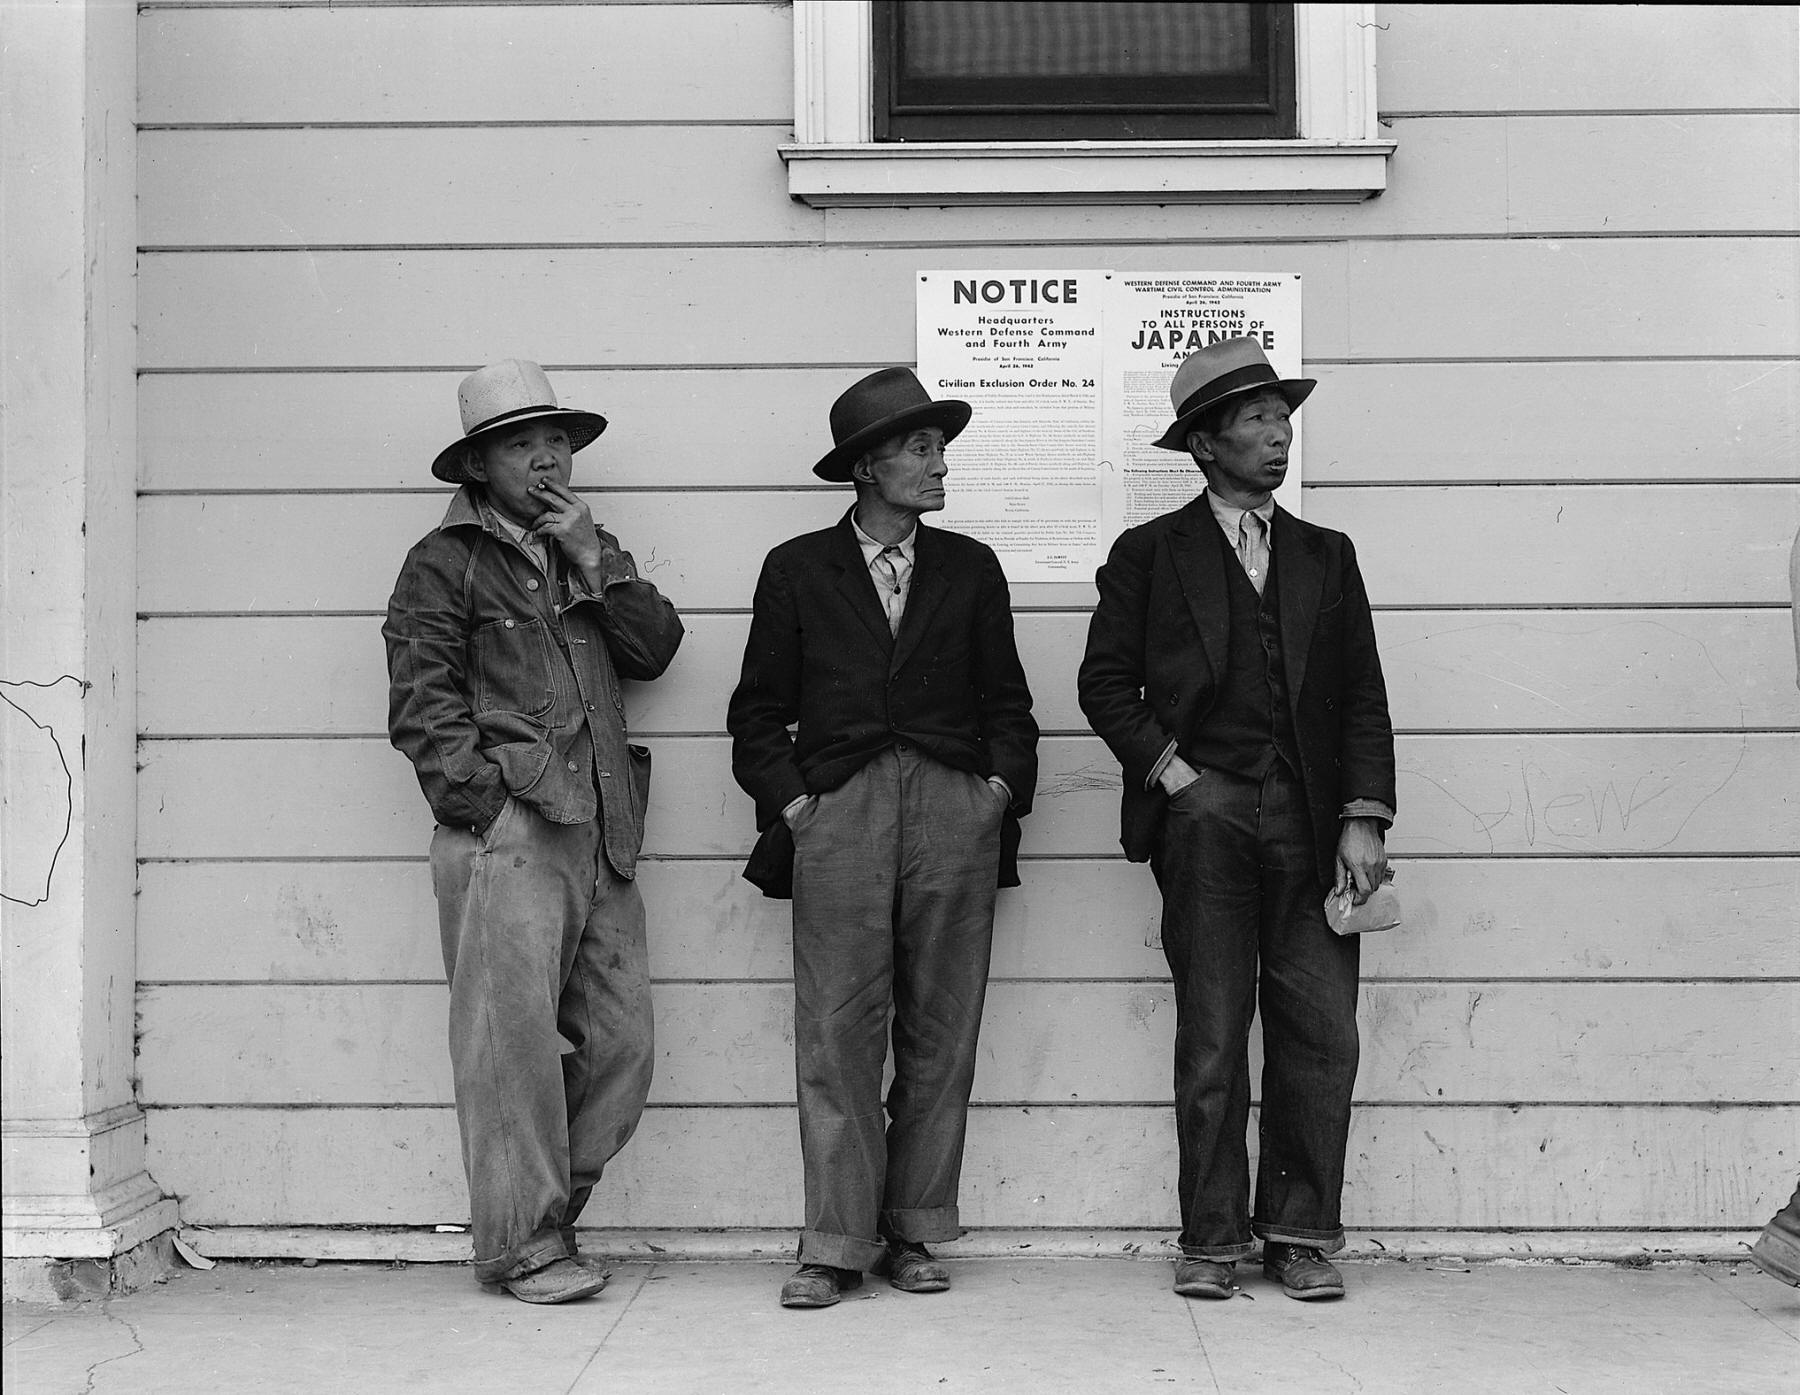 Field laborers in front of a Wartime Civil Control Administration station in Byron, where they had come for instructions and assistance regarding their relocation.